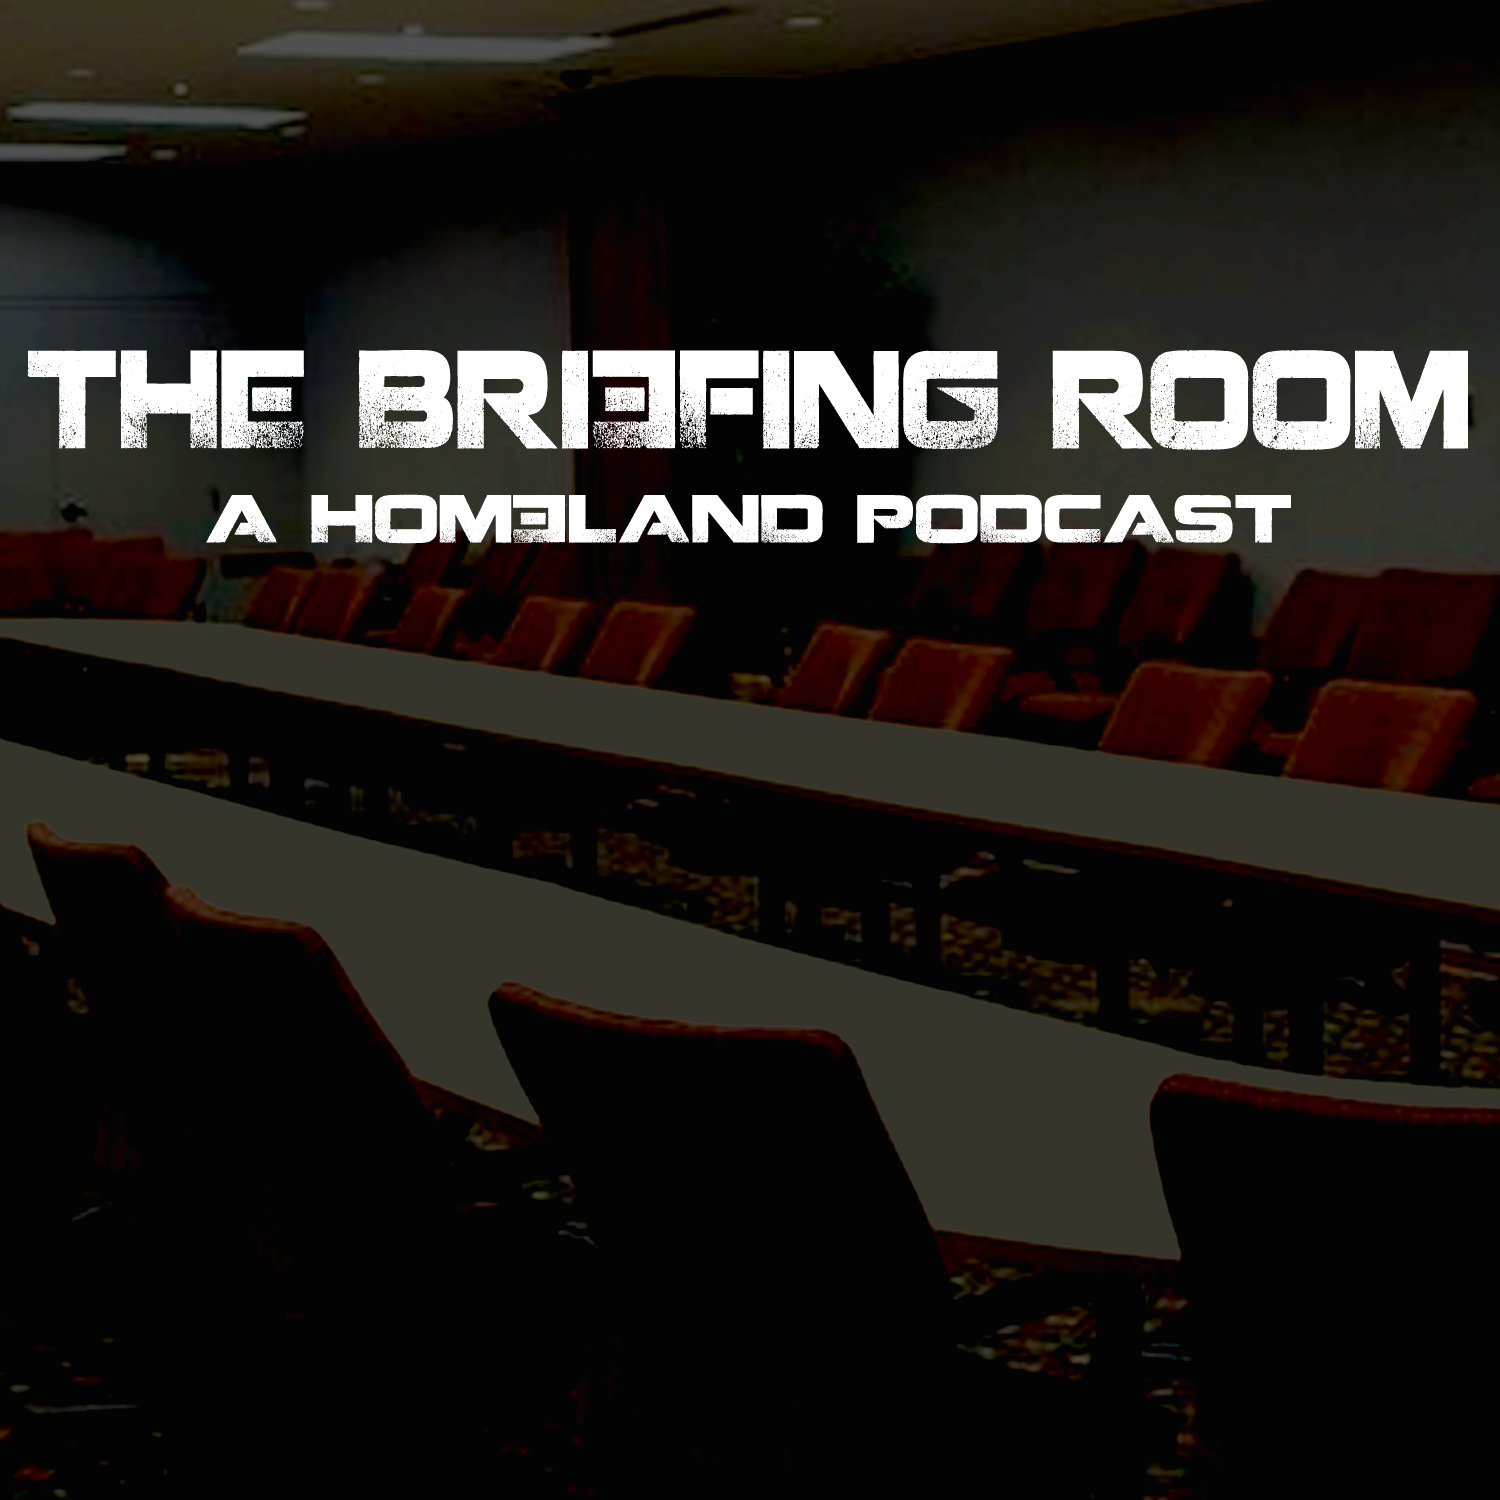 The Briefing Room: A Homeland Podcast